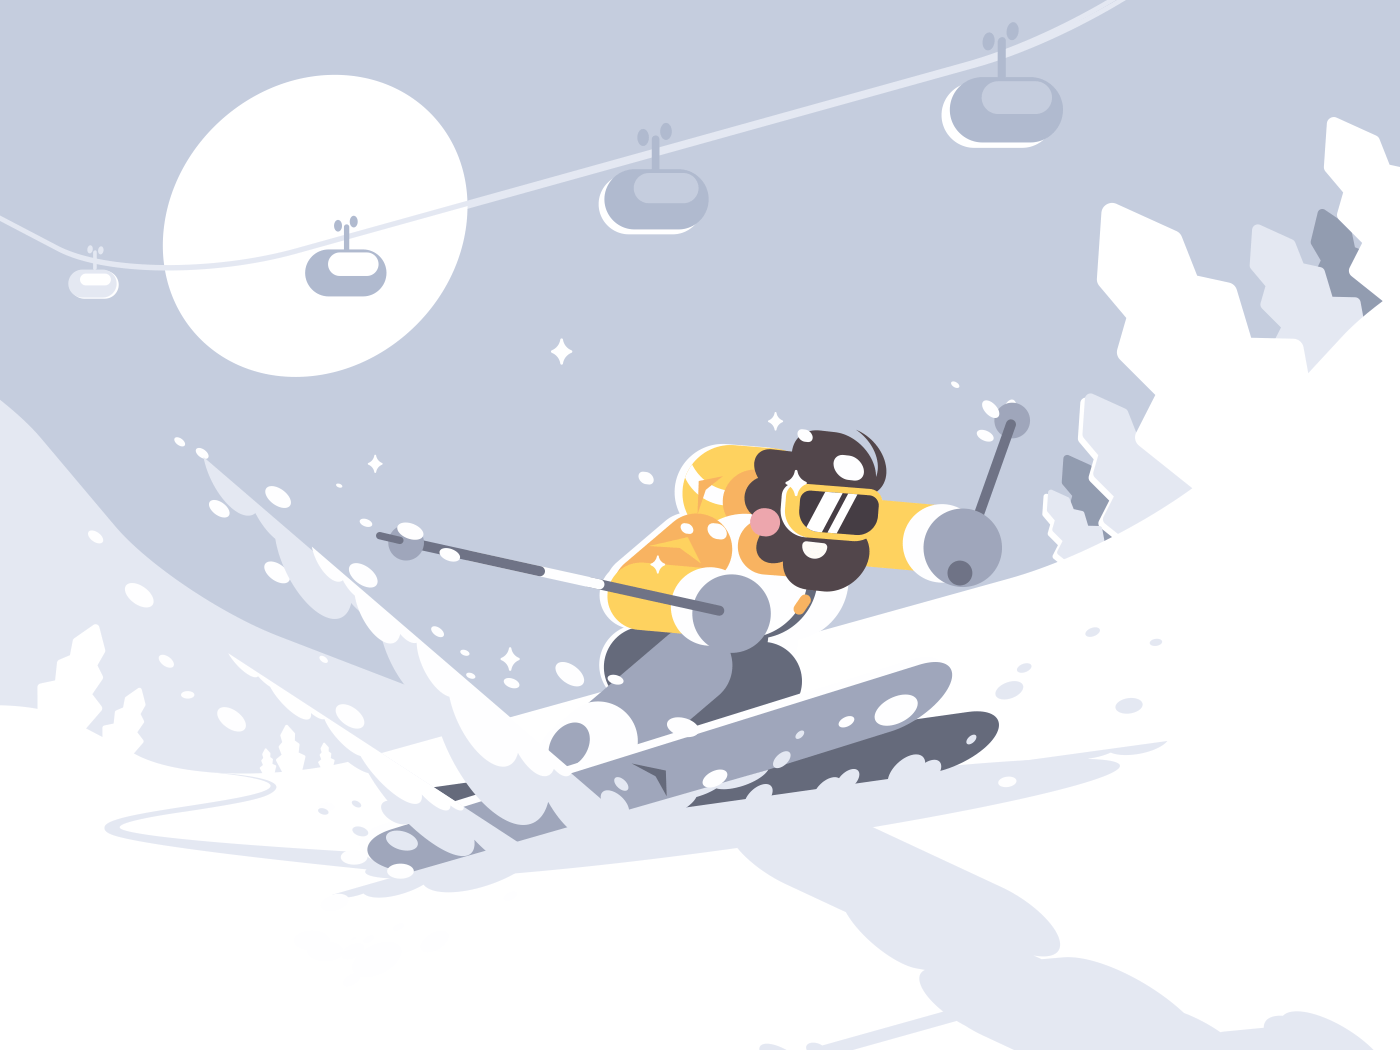 Skier skiing in ski resort. Winter activities rest. Vector illustration